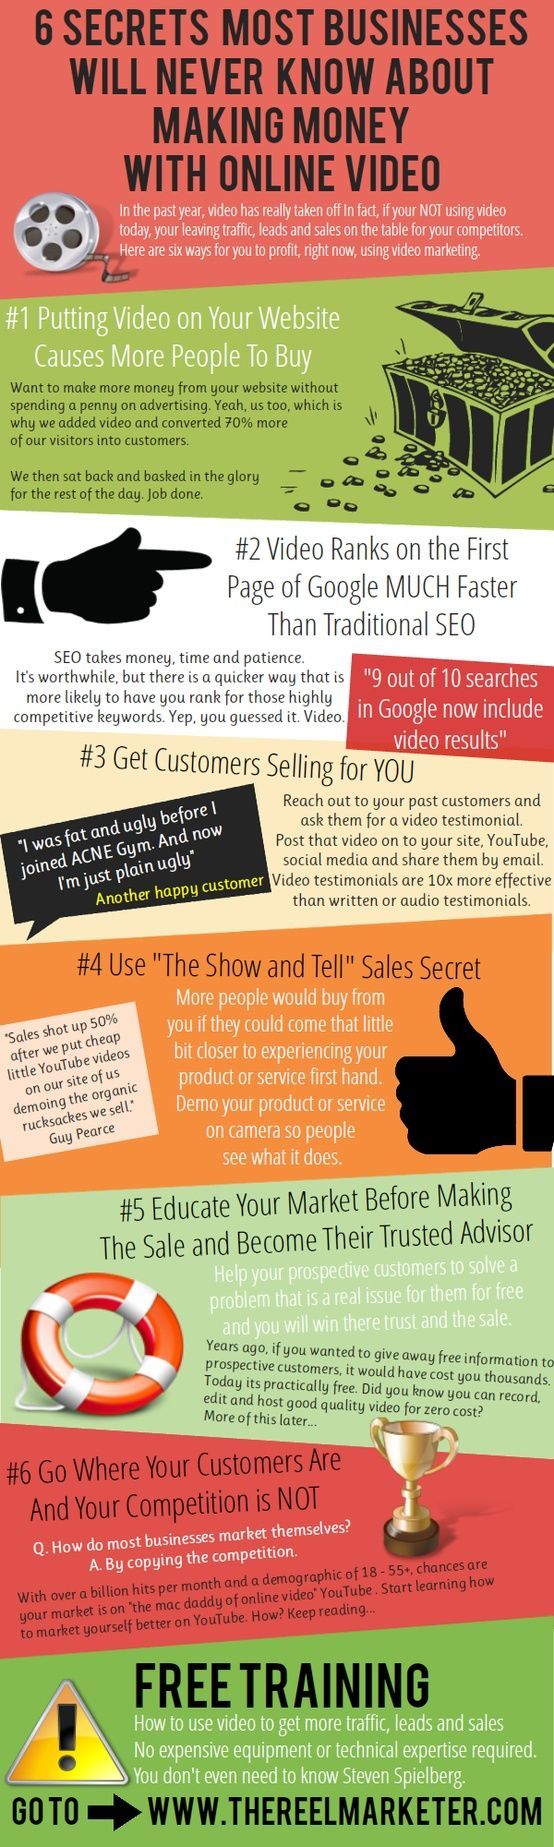 6 Secrets Most Businesses Will Never Know About Making Money With Online Video : infographic